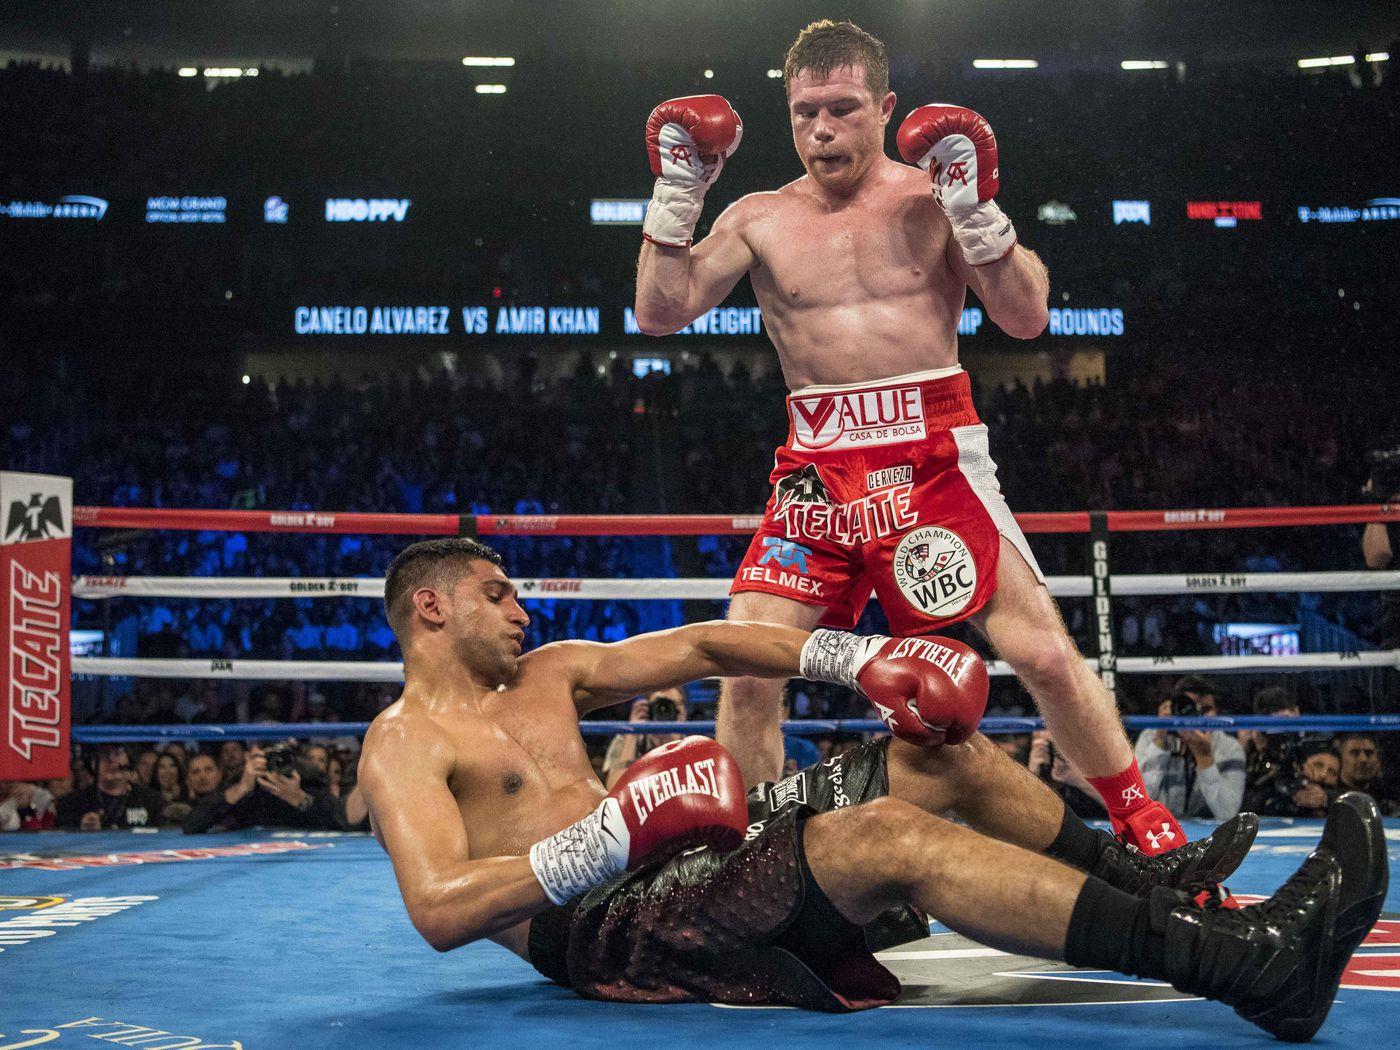 Canelo Alvarez Stops Amir Khan With Stunning Right Hand Mmamaniacom